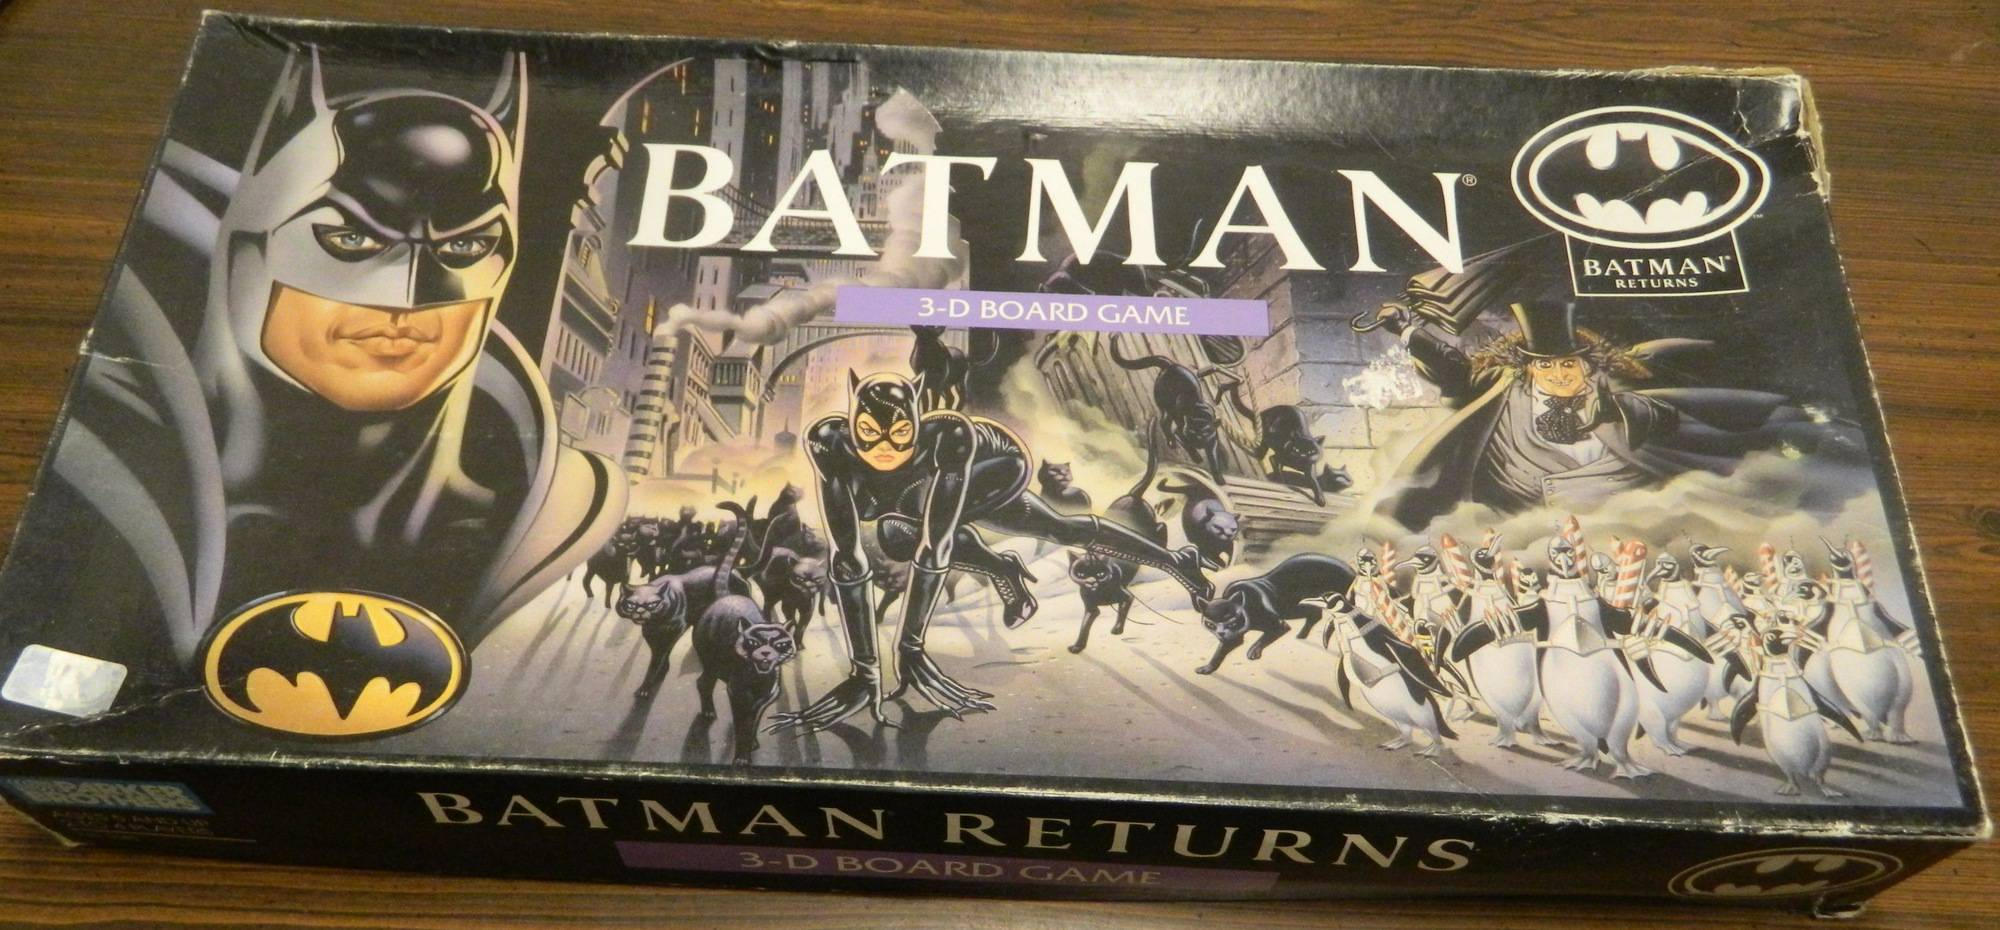 Box for Batman 3D Board Game